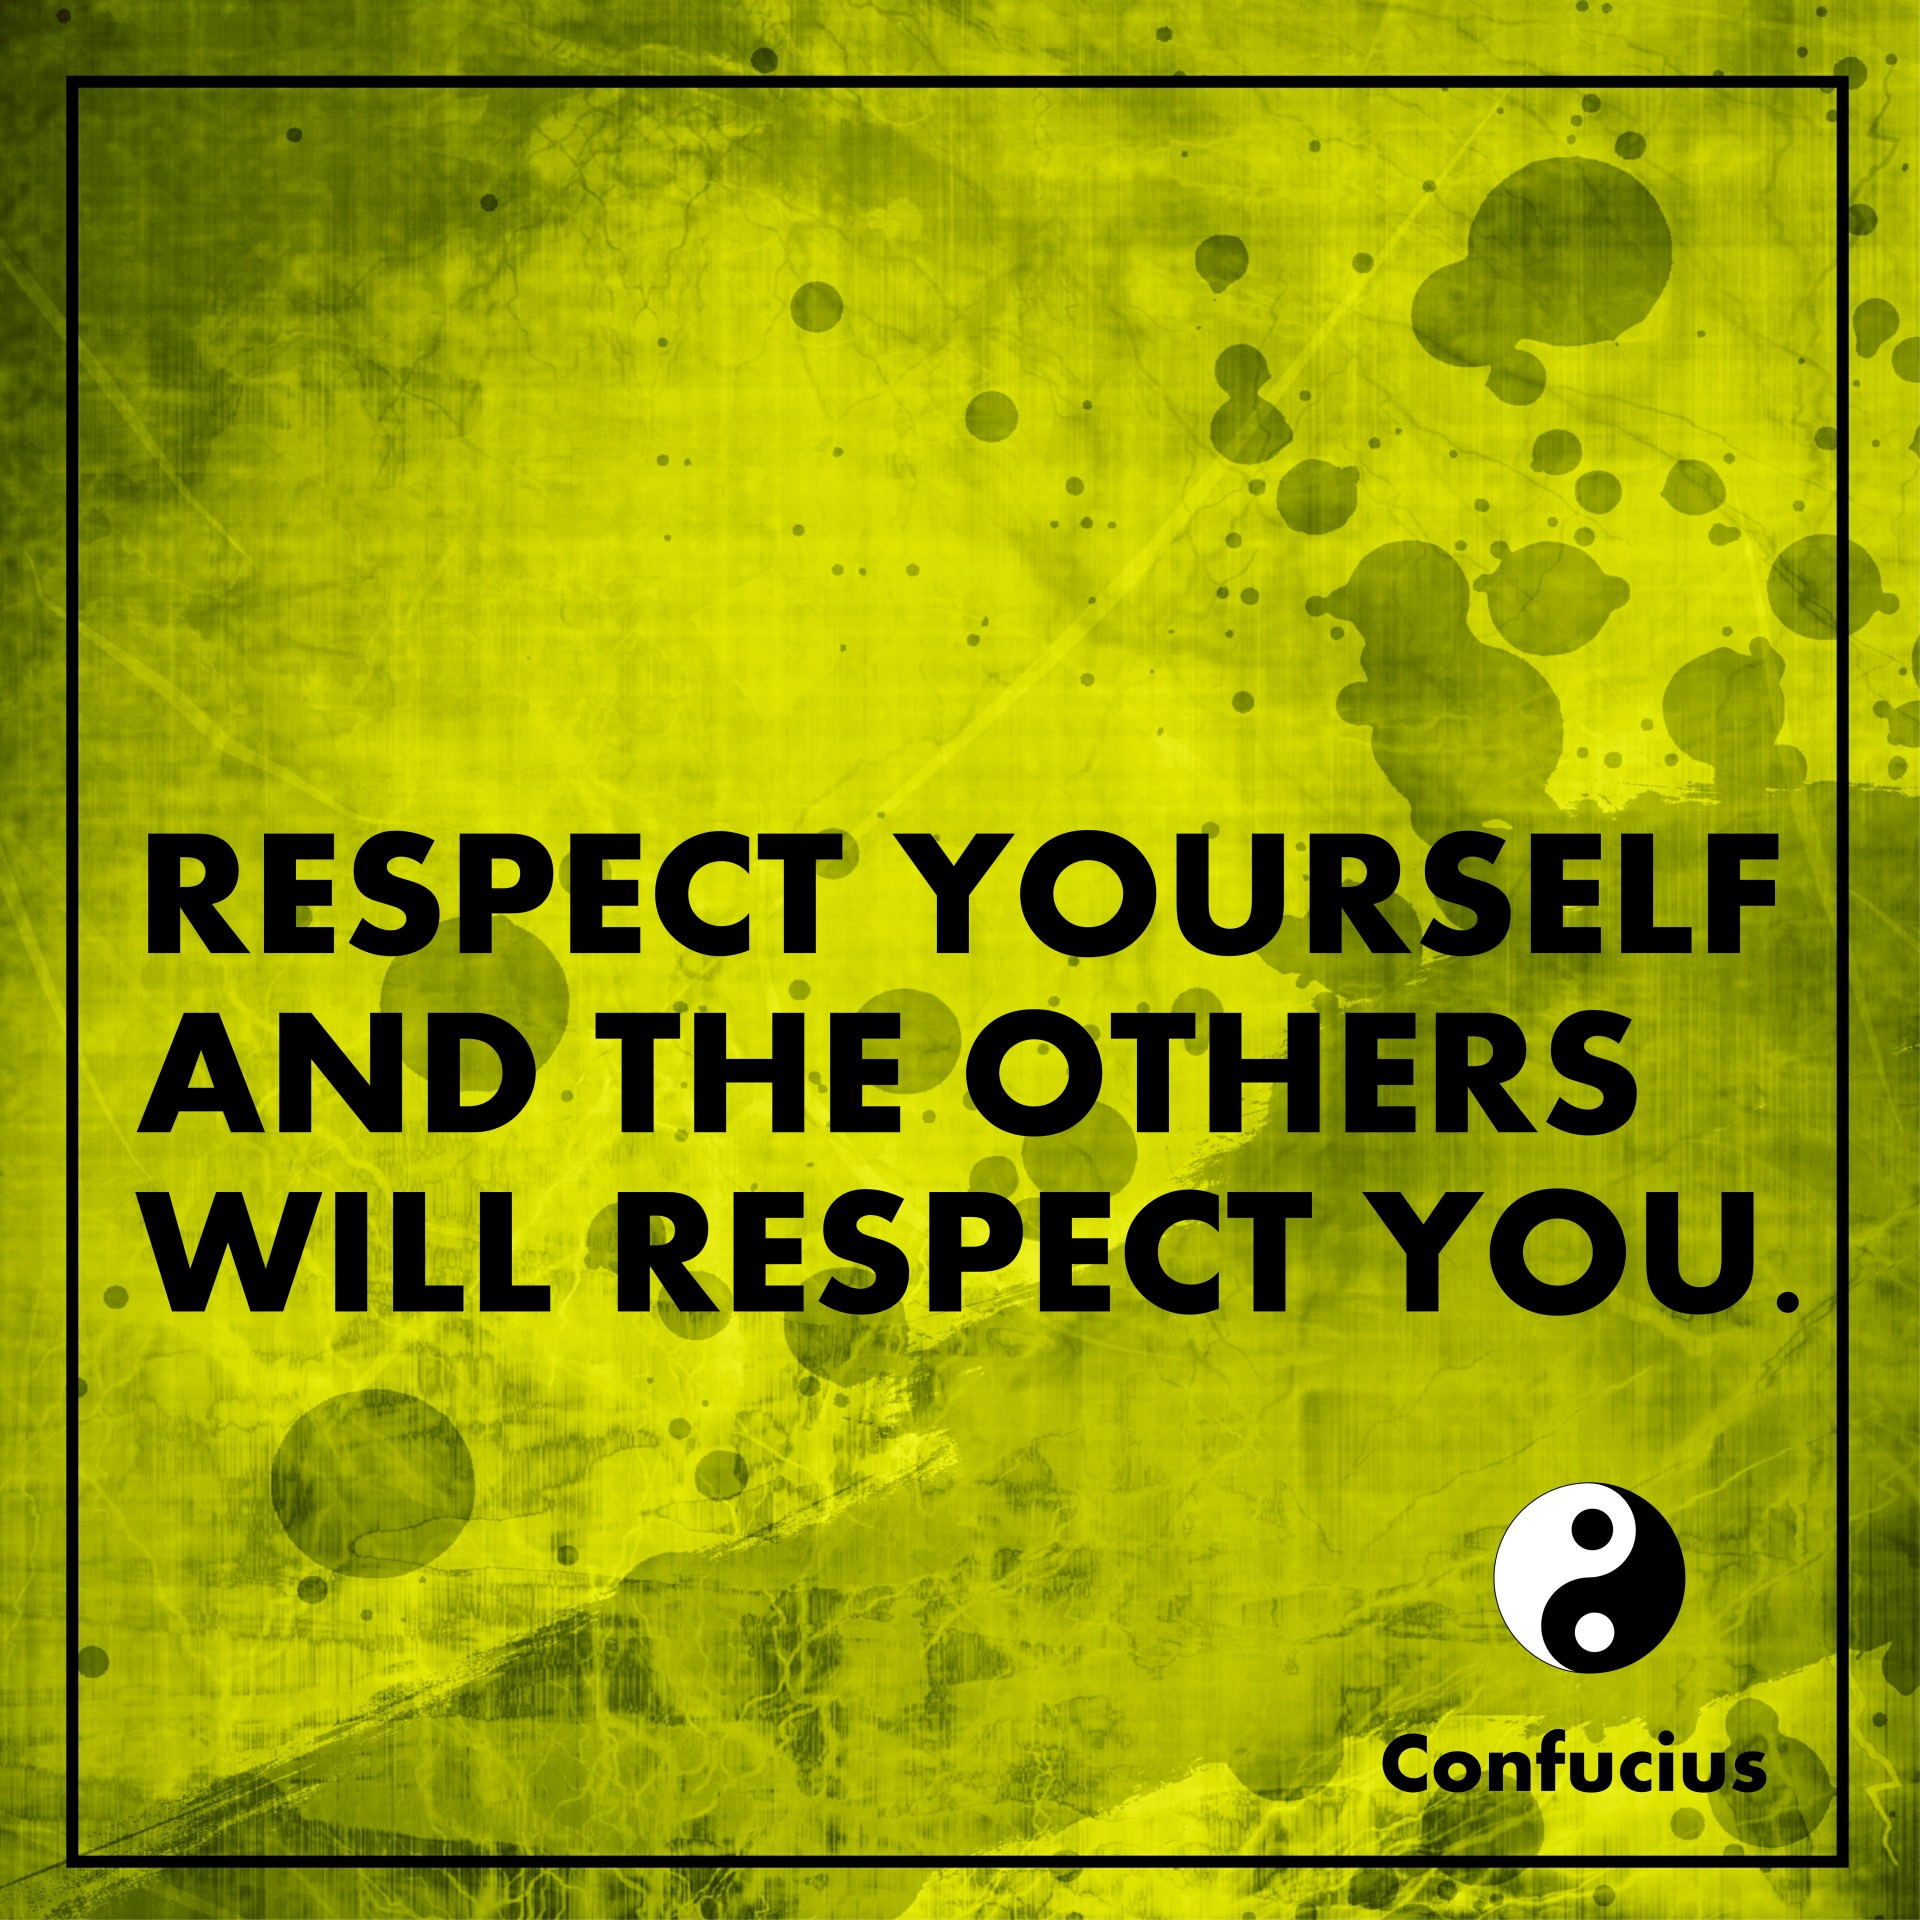 Quote Quote Wallpaper Respect Yourself Confucius Free Stock Photo Public